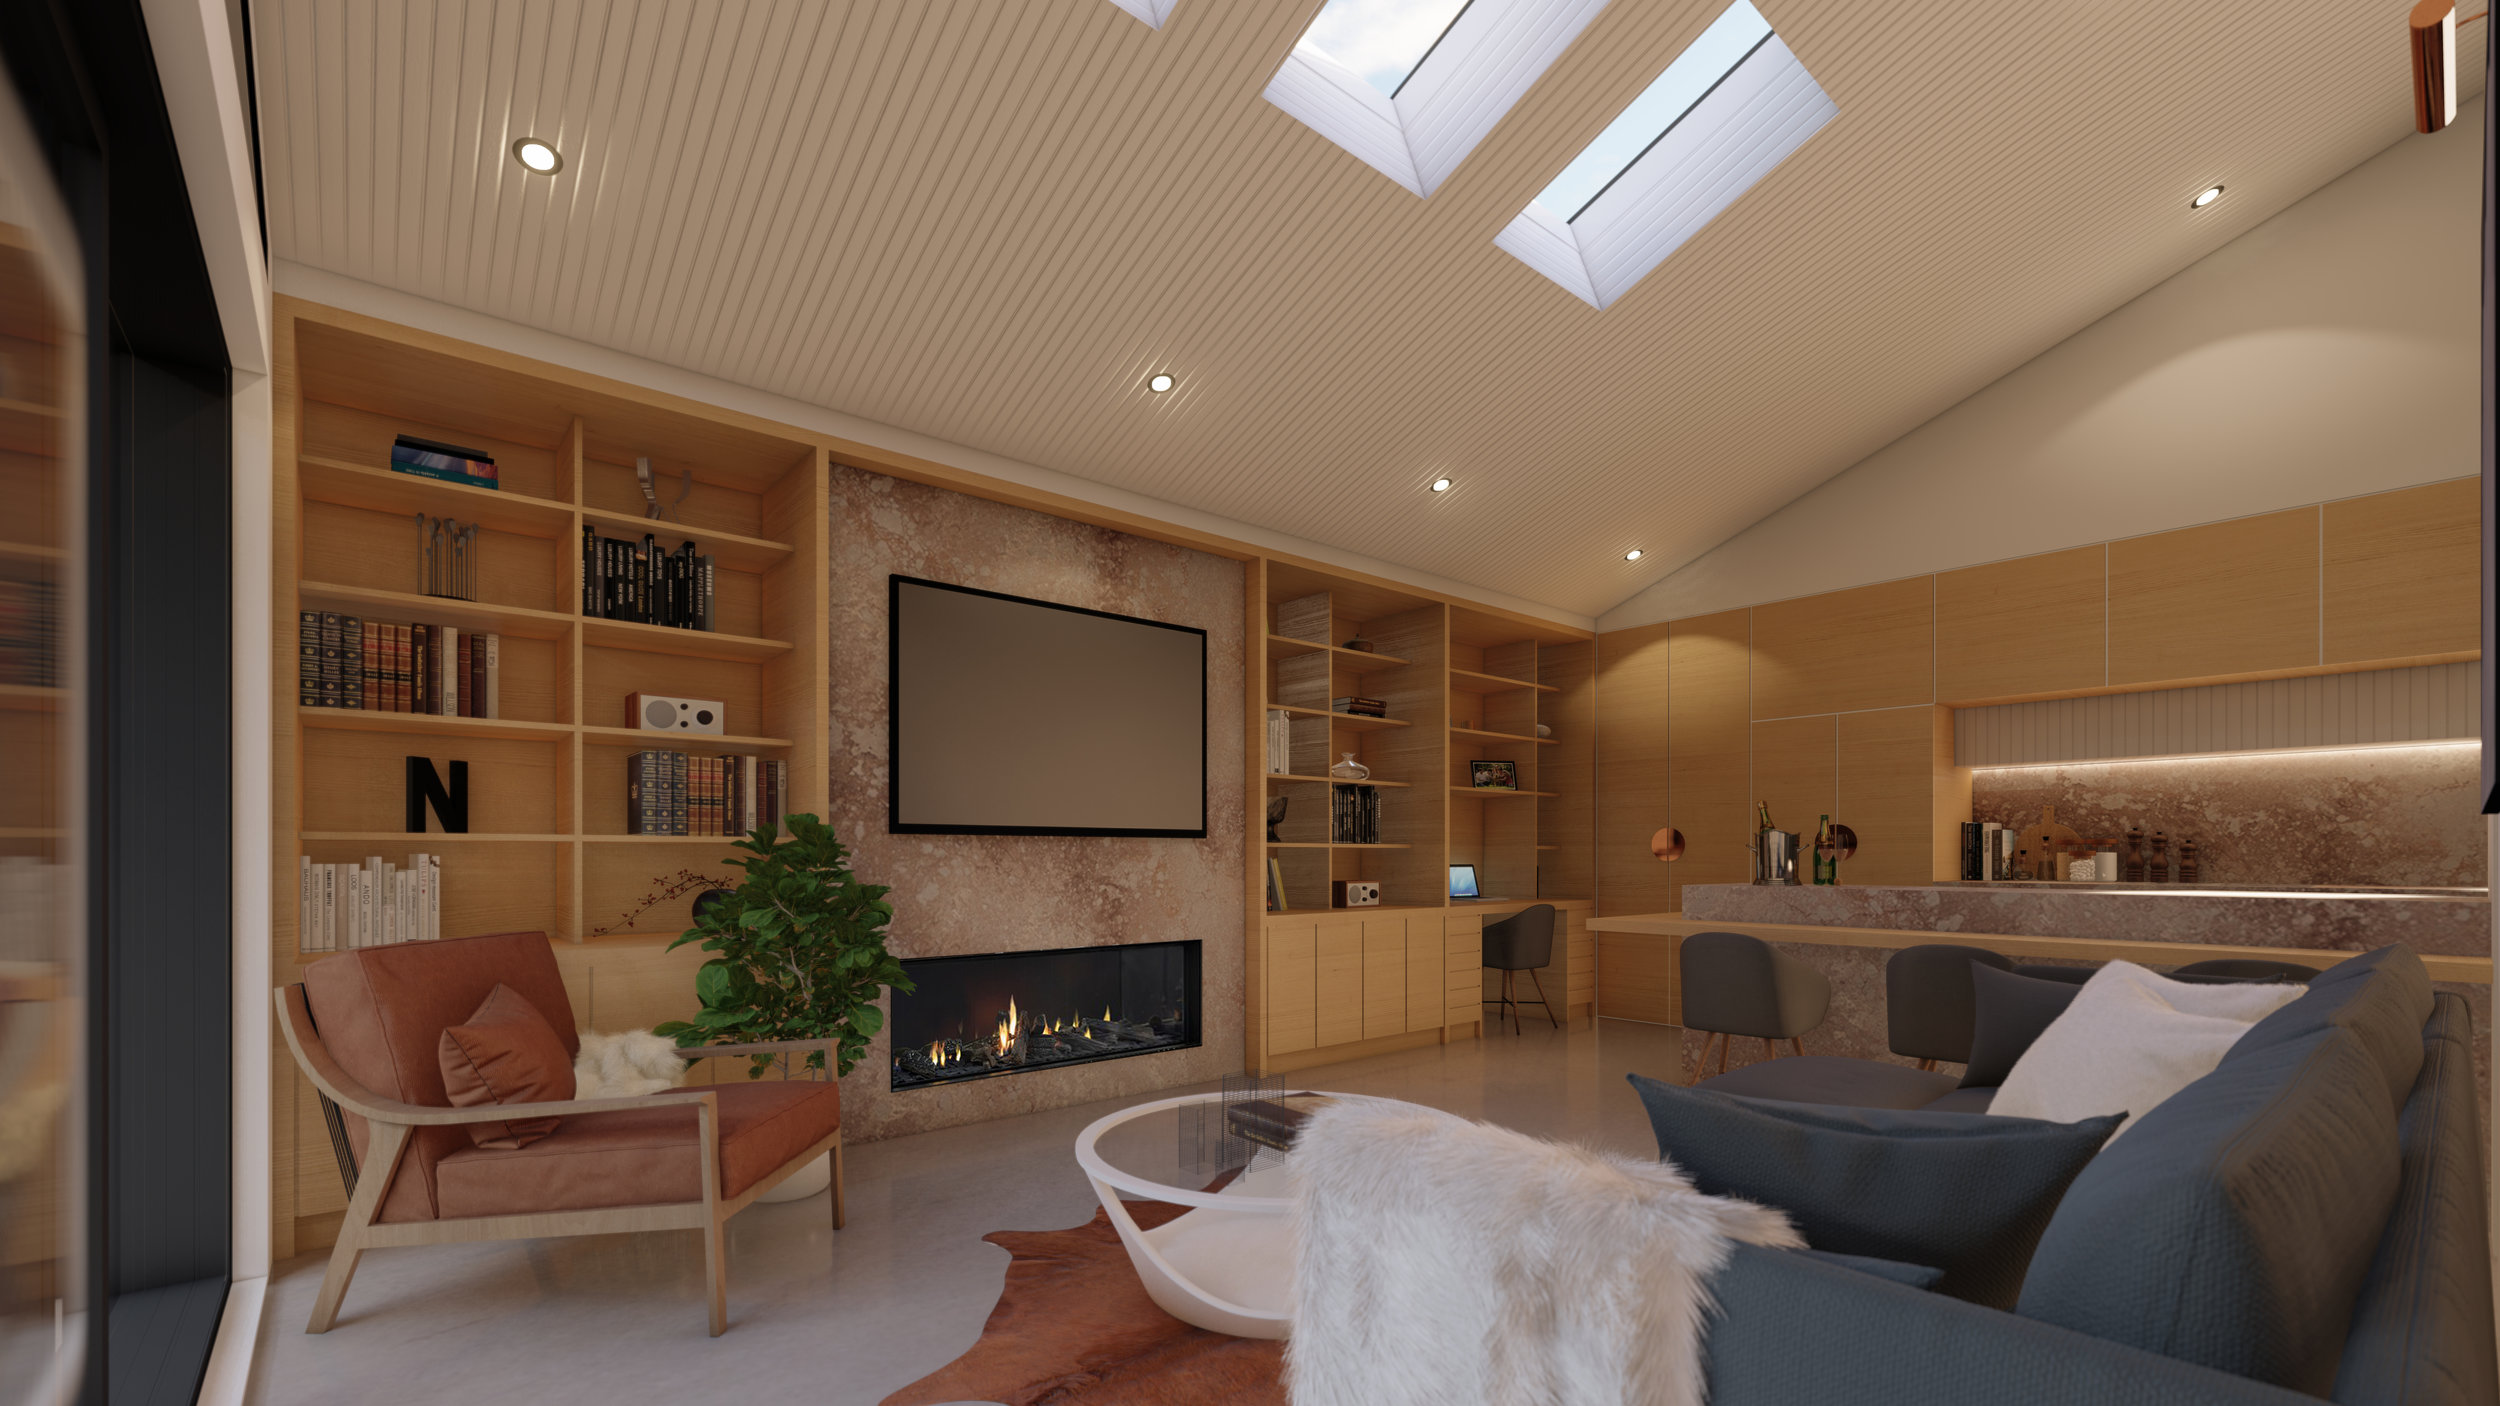 Interiors designed with a choice of differing in palettes *Artists impression